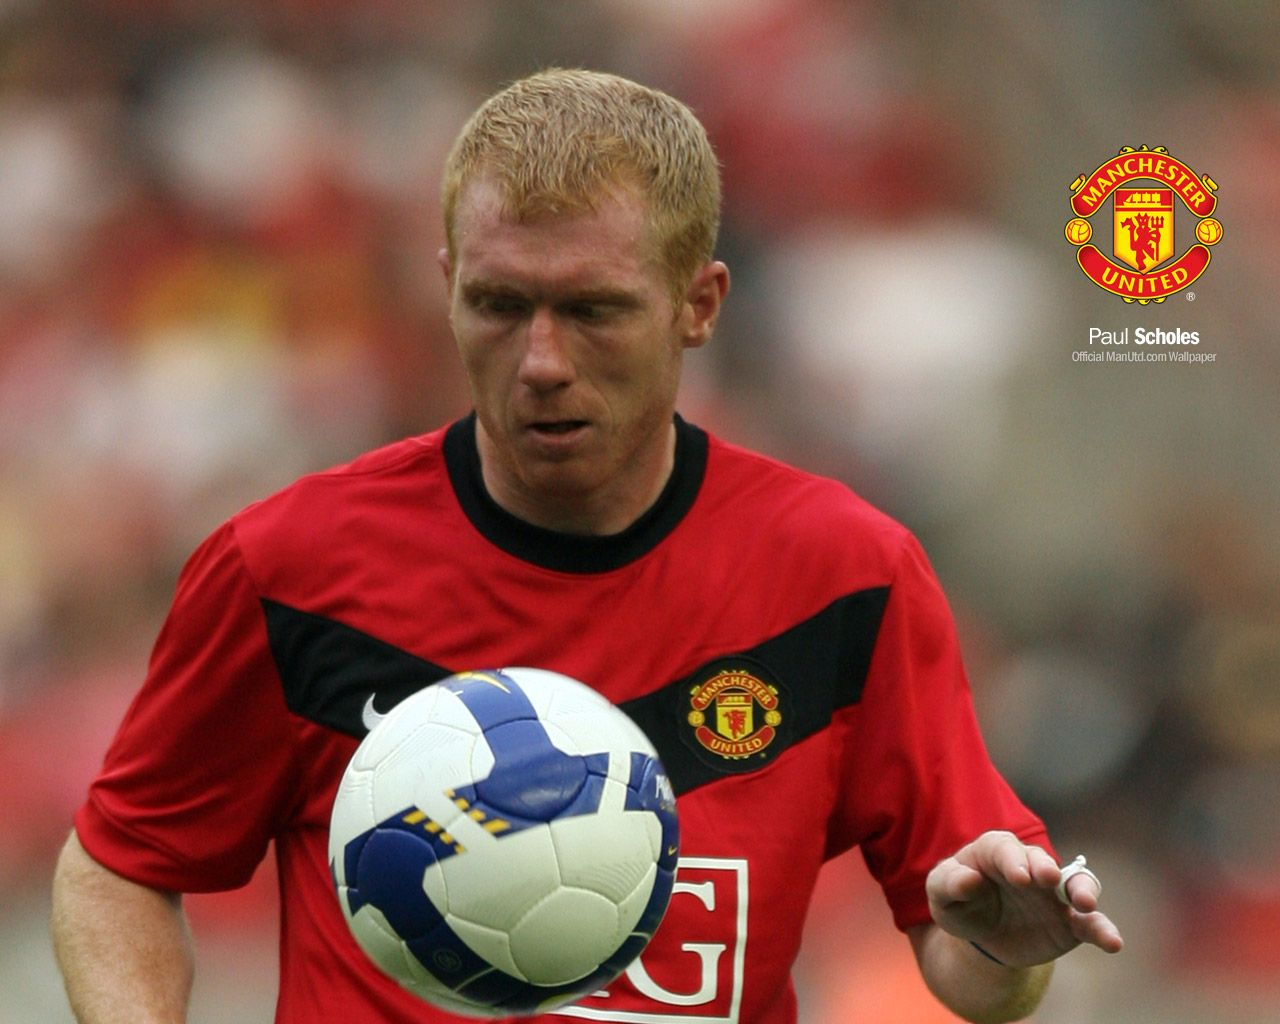 Paul Scholes: MANCHESTER UNITED FC: Paul Scholes